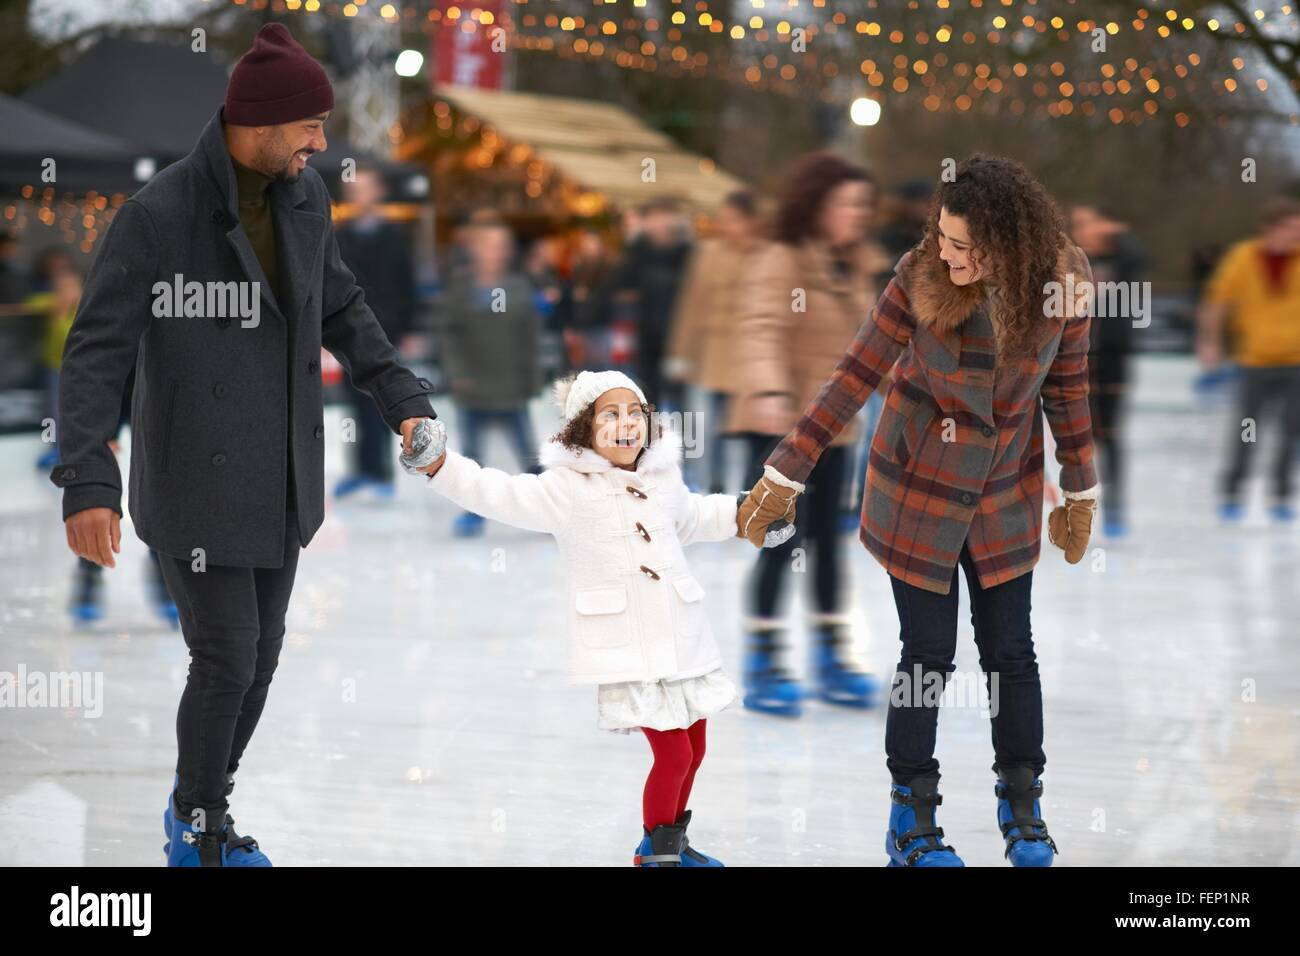 Girl holding parents hands ice skating, smiling - Stock Image